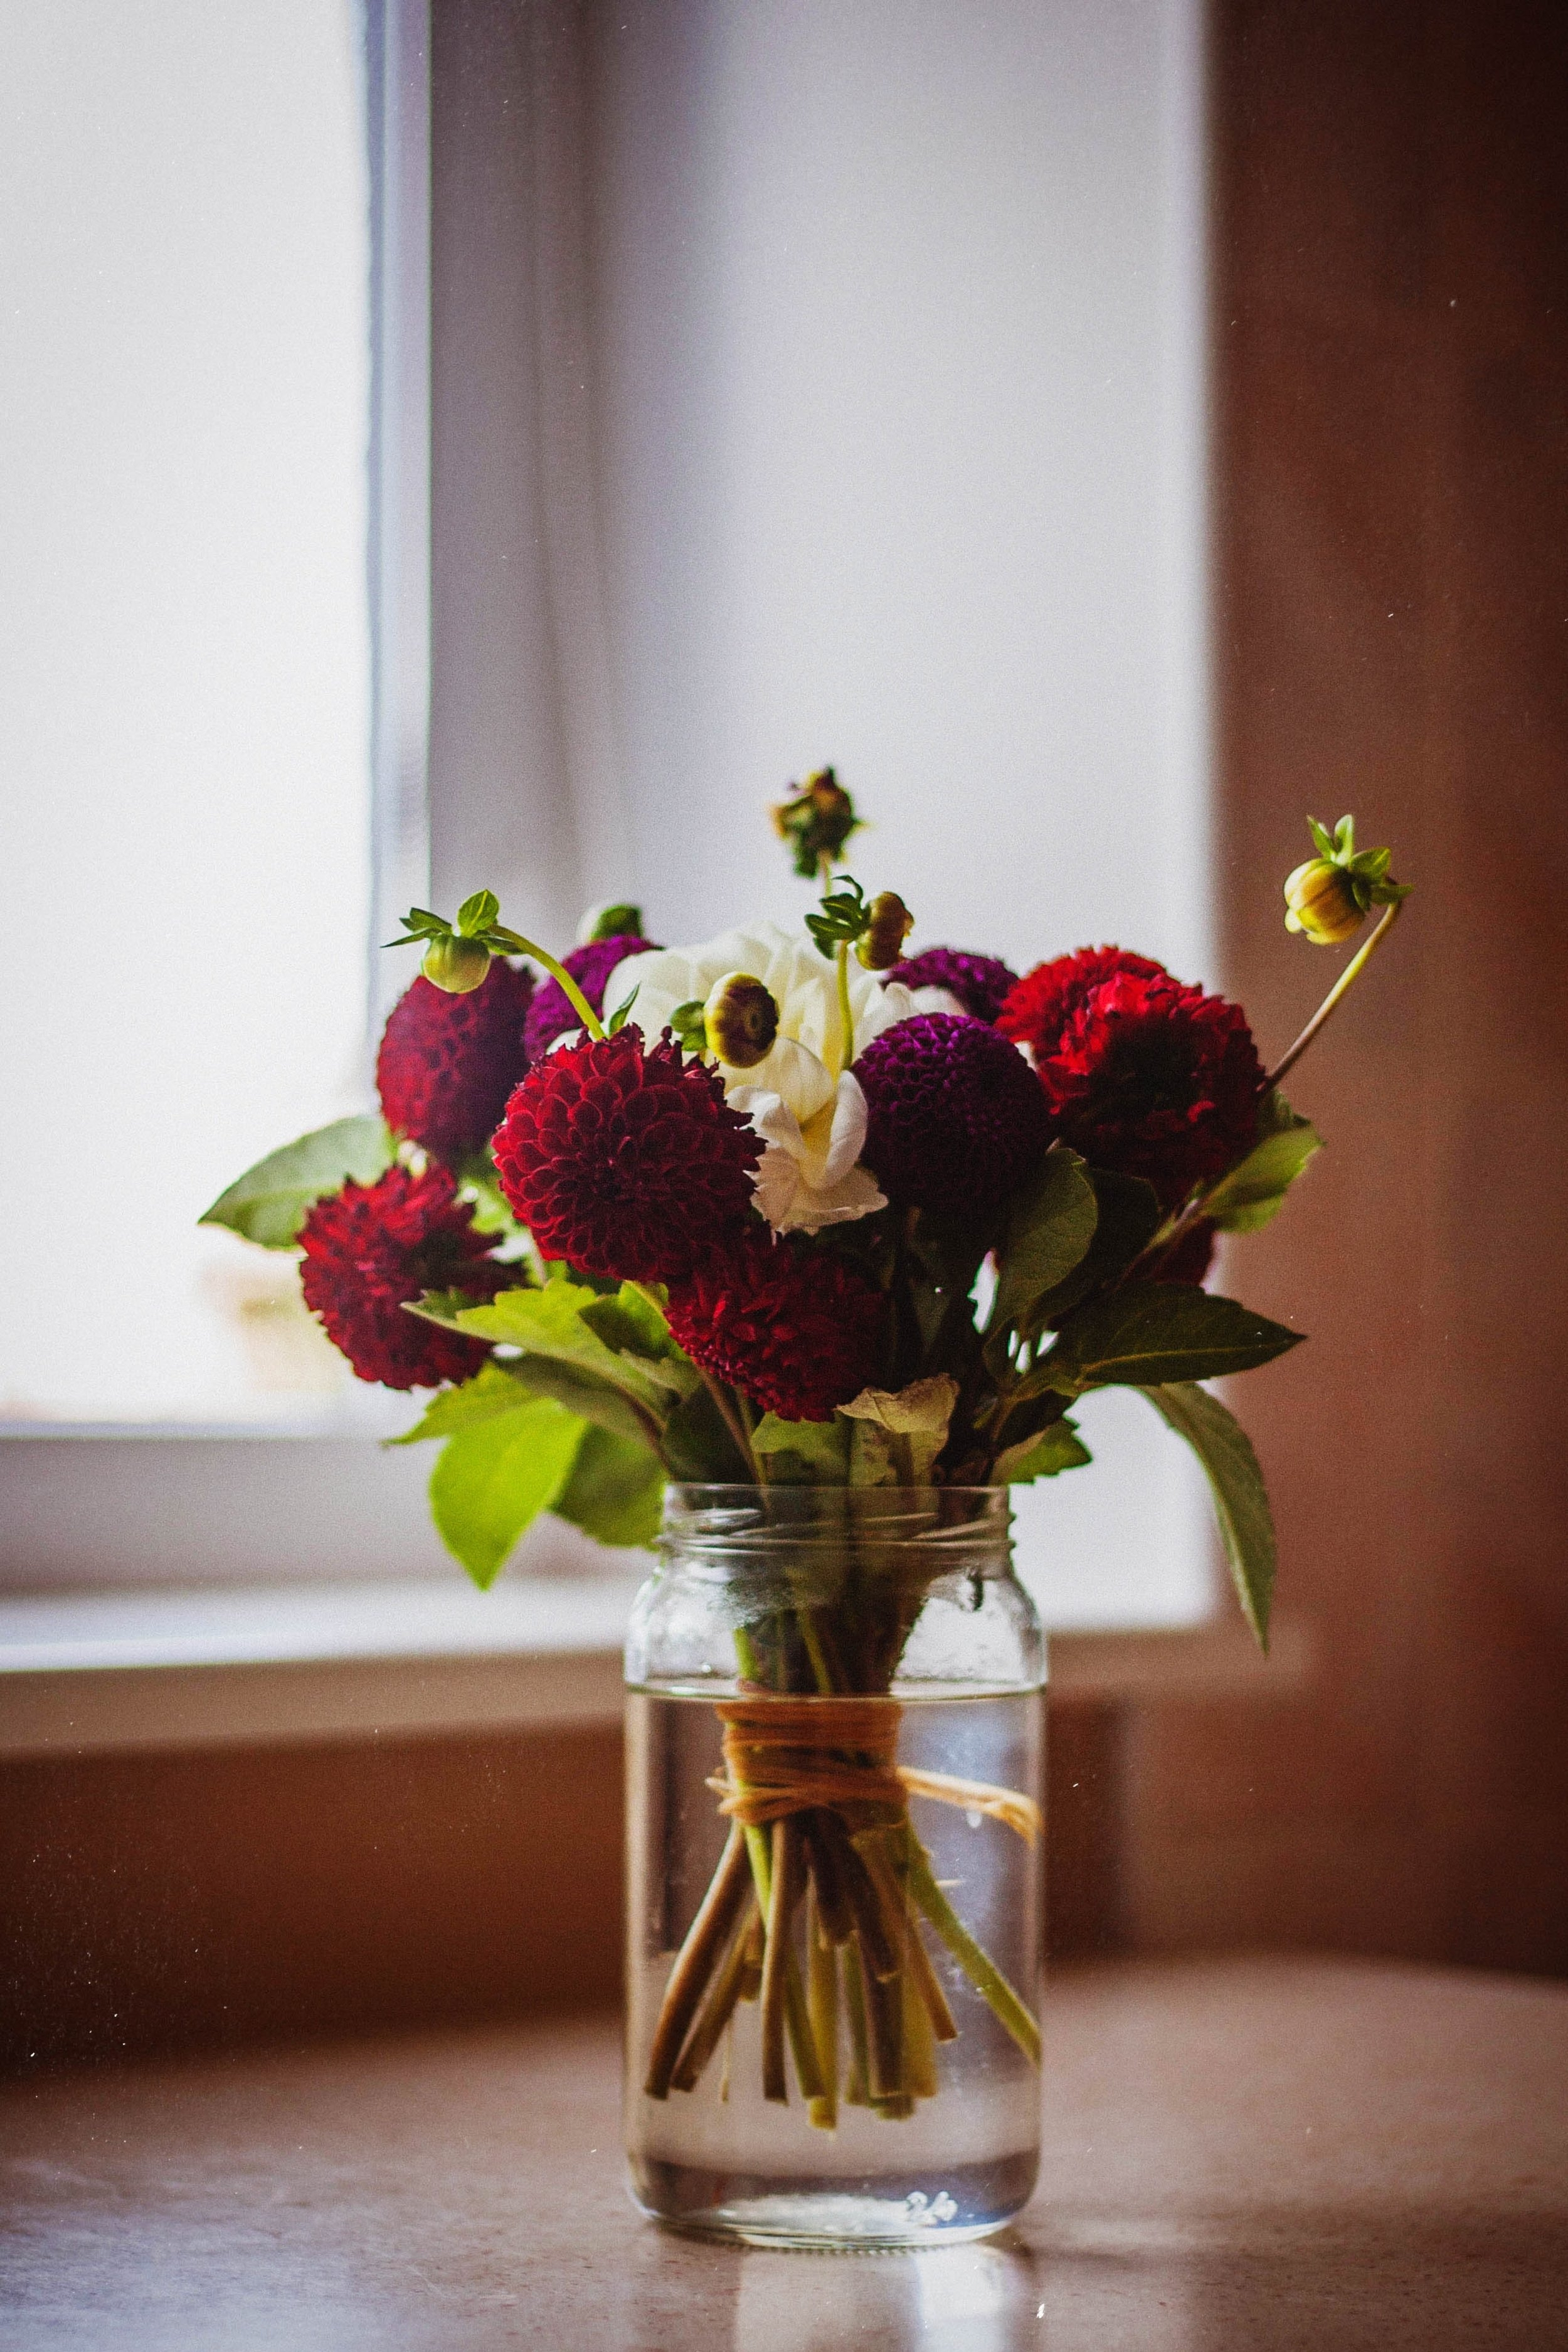 How to keep your flowers looking fresh: -